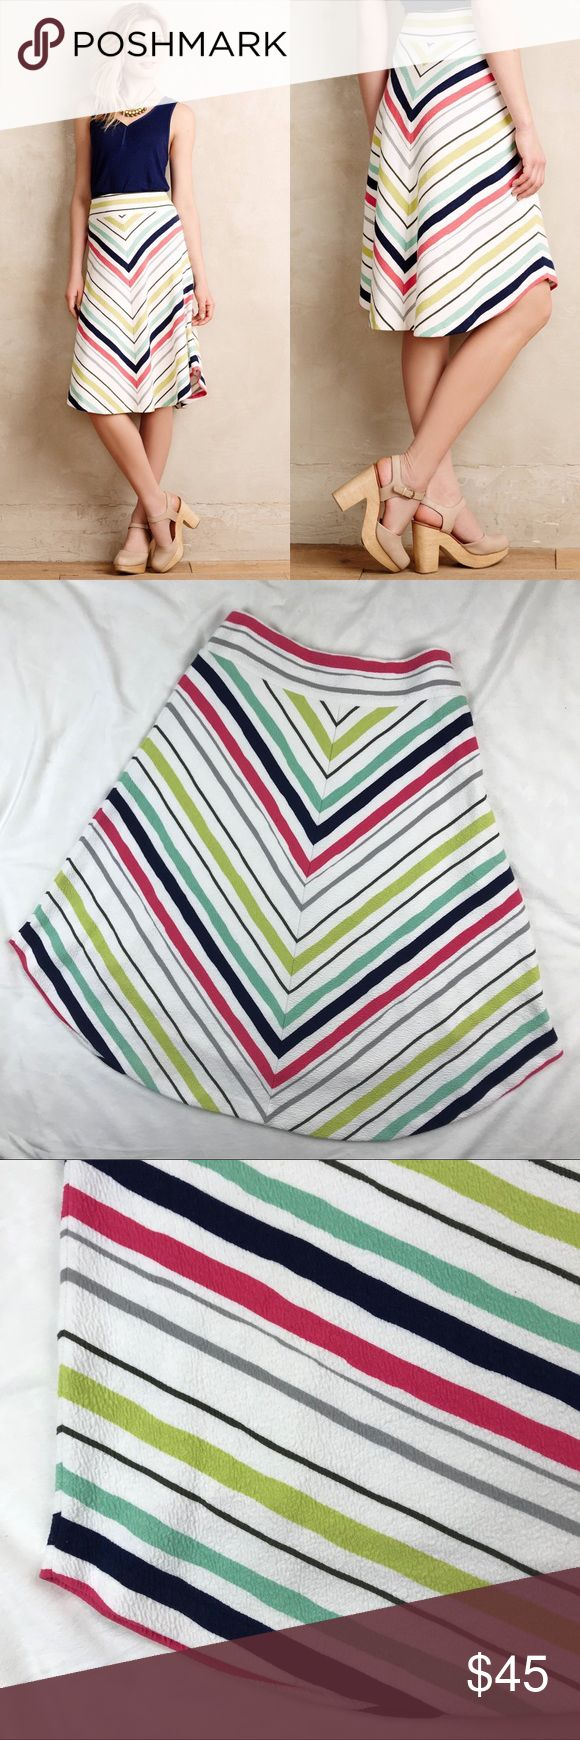 """ANTHROPOLOGIE Maeve Springstripe Skirt ANTHROPOLOGIE Maeve Springstripe Skirt  Textured fabric with colorful stripes. Side concealed zip. Fully lined.   SHELL: 70% cotton 30% spandex LINING: 97% polyester 3% spandex   Length 28"""" down the center, waist 15"""" Anthropologie Skirts Midi"""